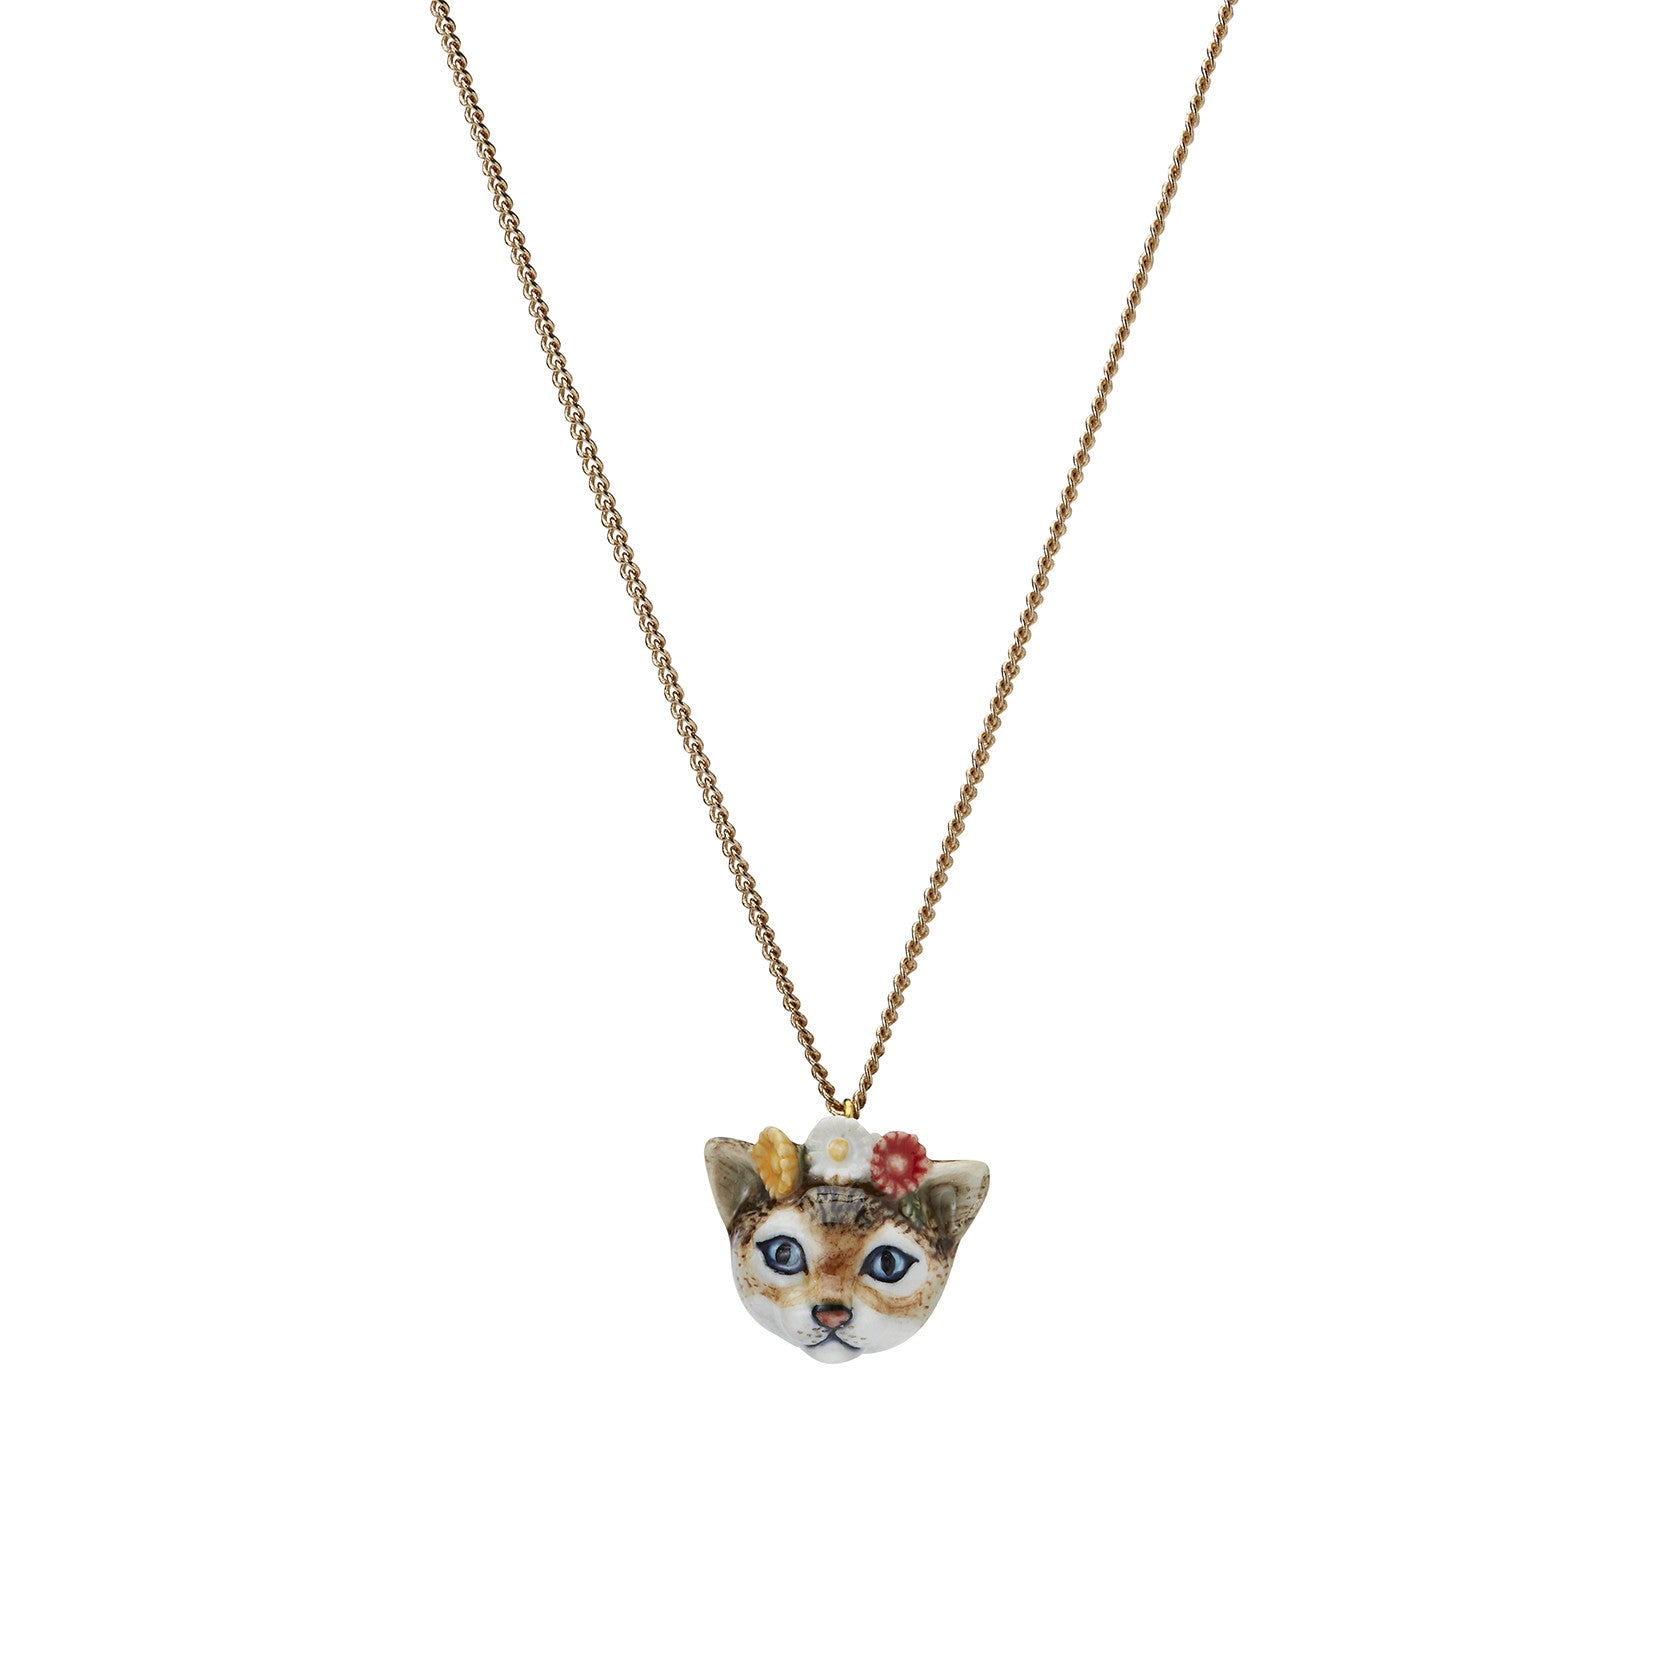 Kitten Head with Flowers Necklace